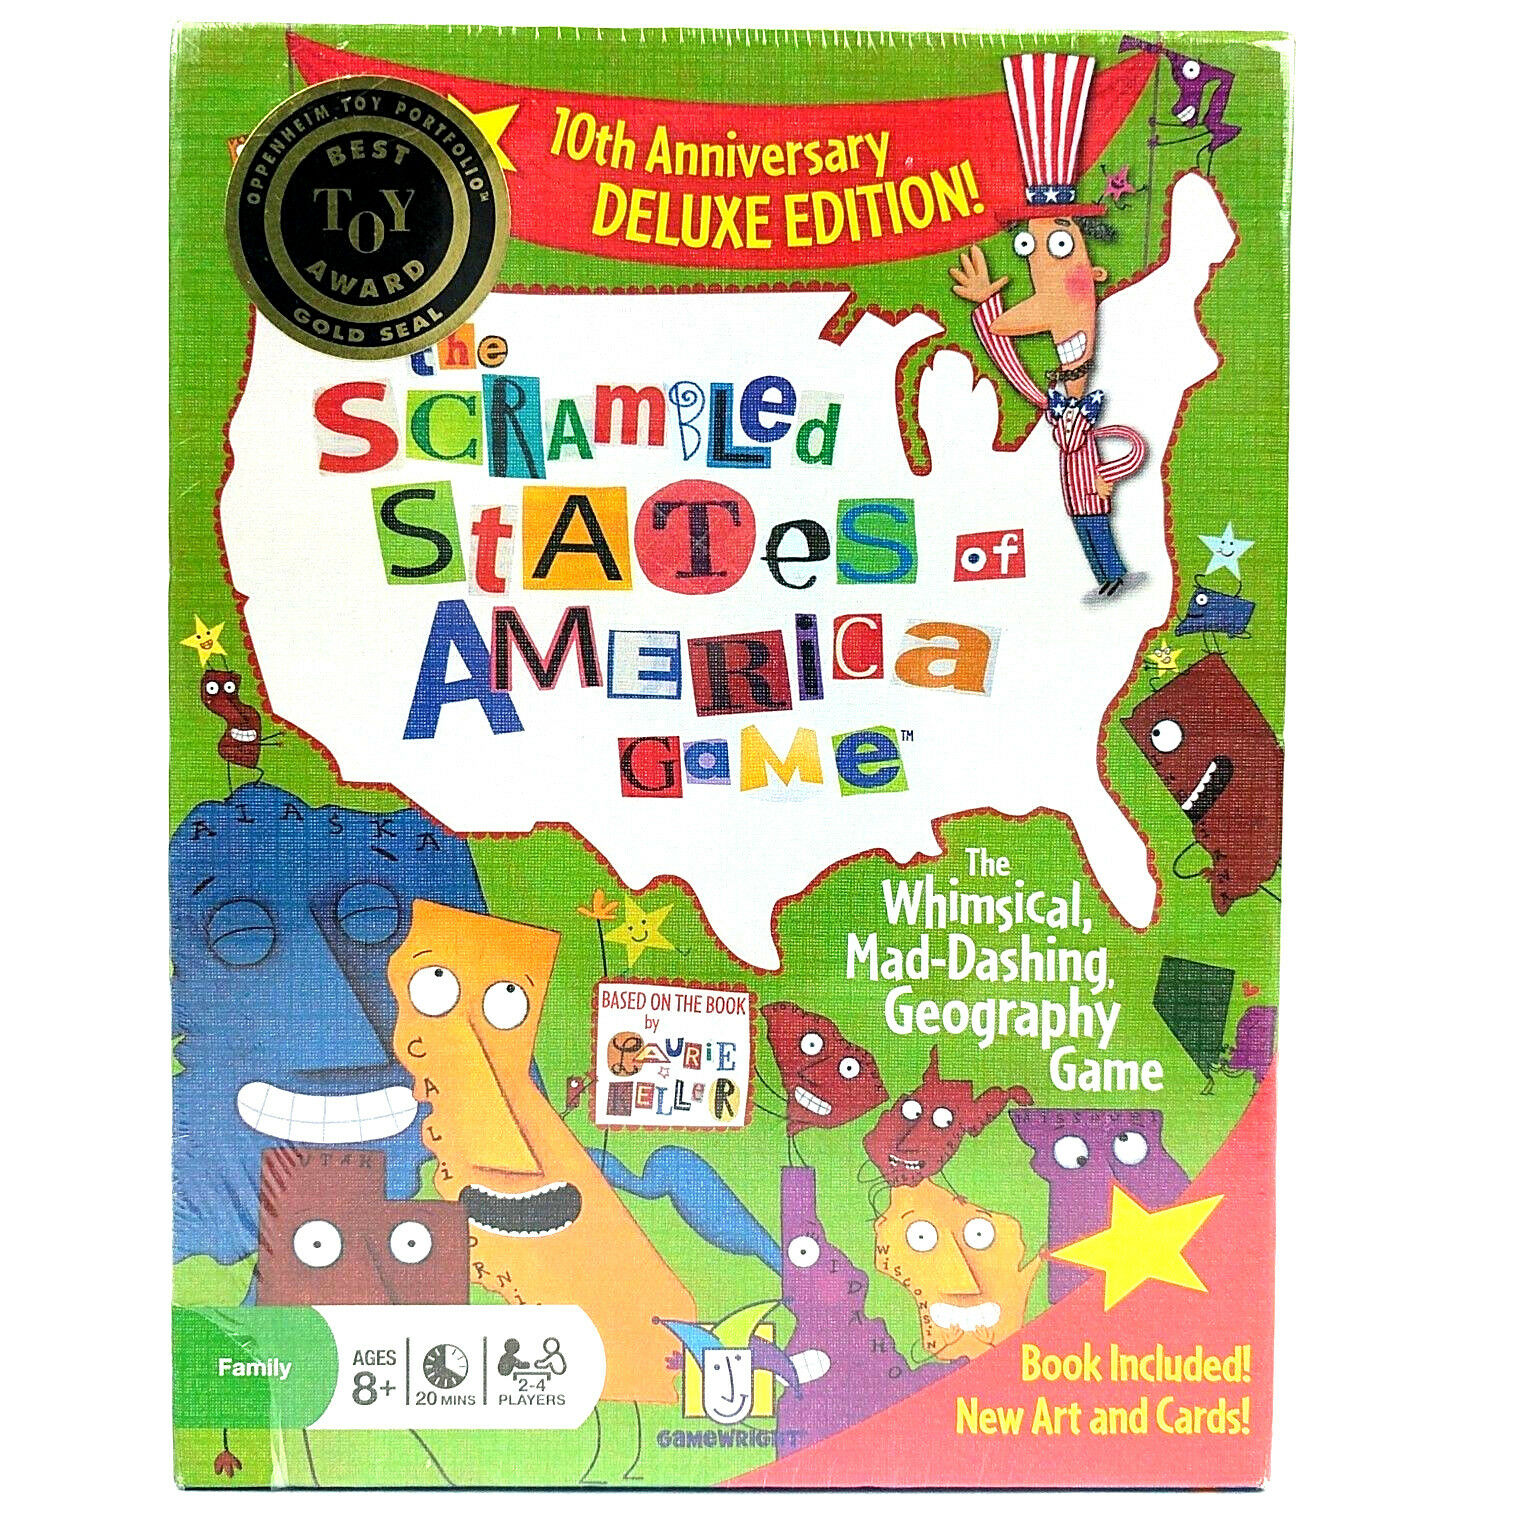 The Scrambled States Of America Game Deluxe Edition by GameWright Home Schooling